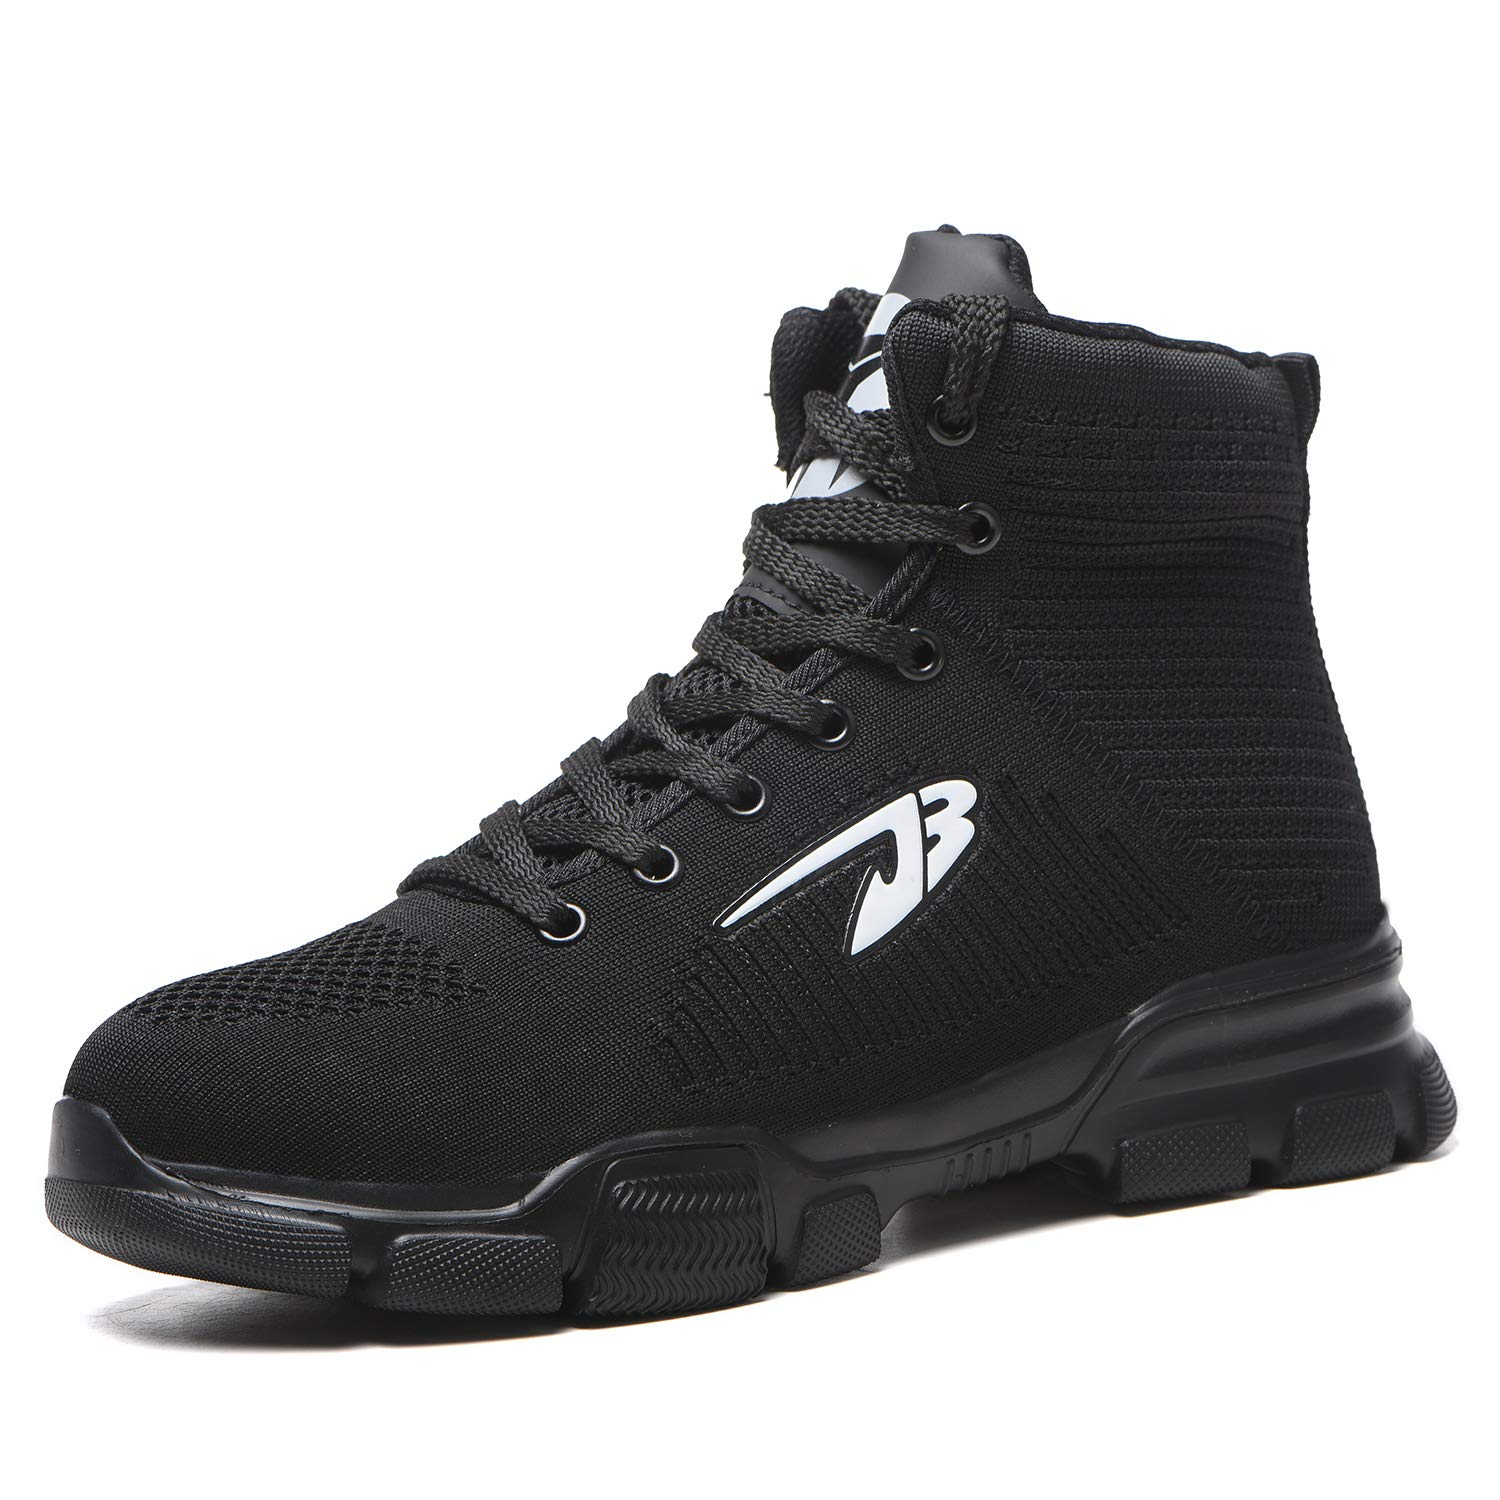 WOWSTICK Indestructible Steel Toe Safety Boots, Waterproof Slip Resistant Lightweight Industrial Construction Work Shoes